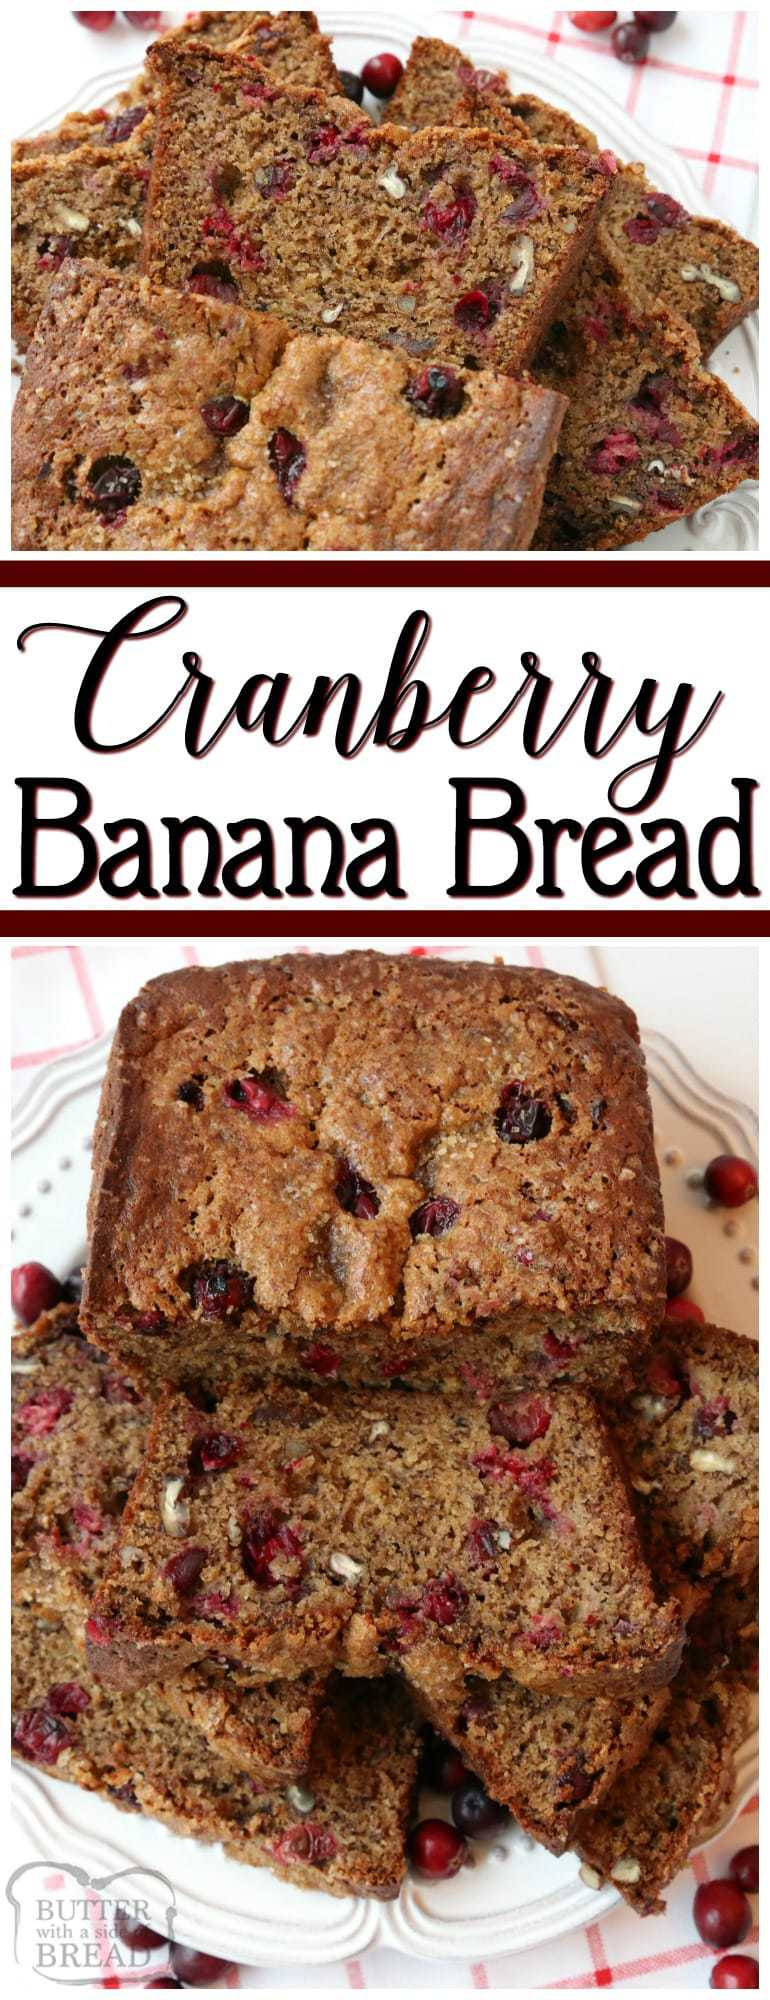 Cranberry Banana Bread is made with flavorful fresh cranberries, sweet ripe bananas, cinnamon & nutmeg to make this fantastic take on traditional banana bread recipe.